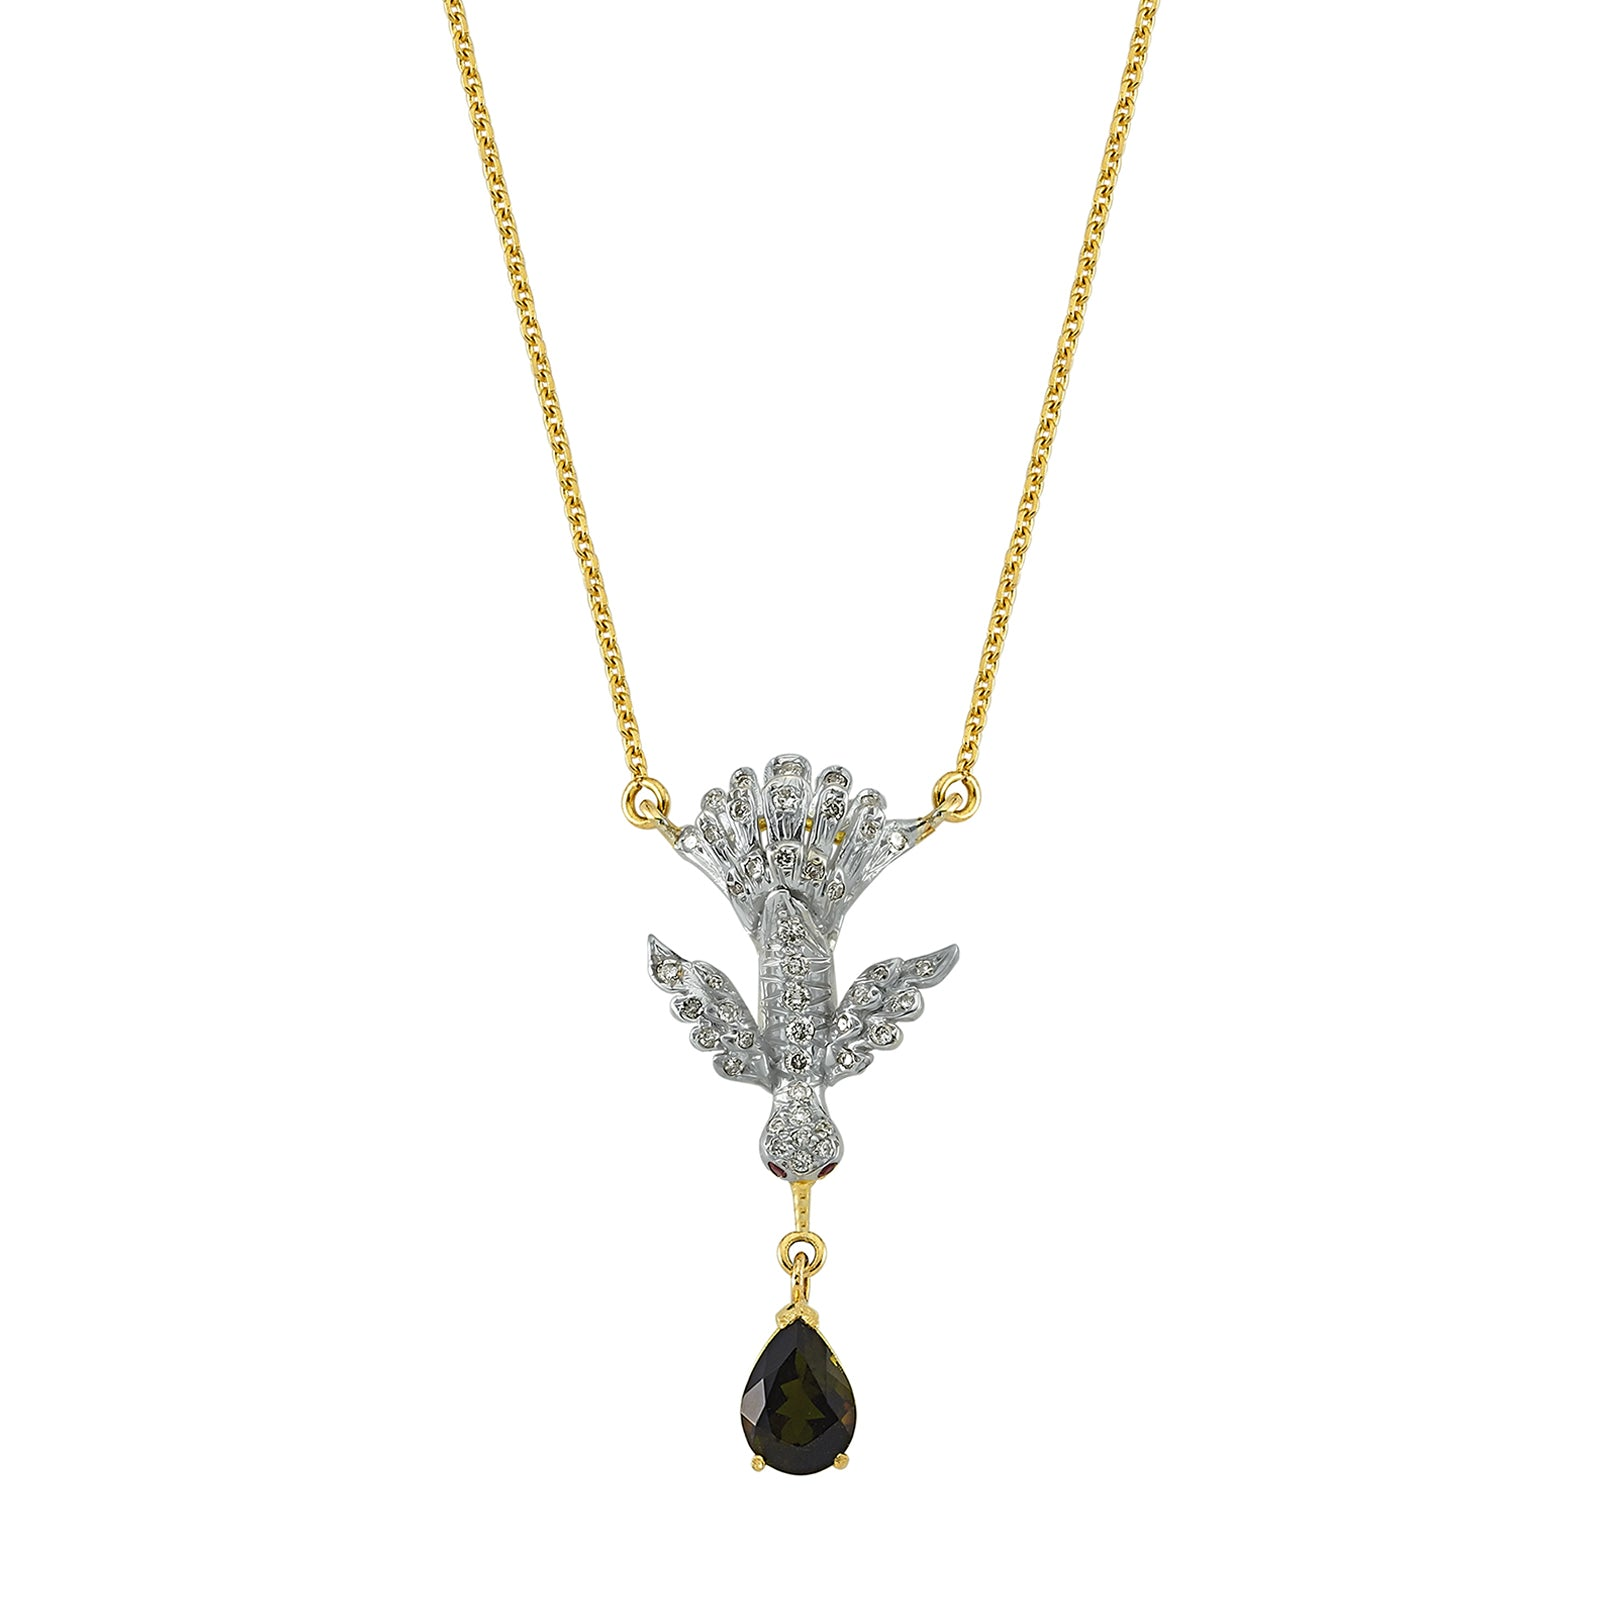 Aida Bergsen Anka Necklace - Black Tourmaline - Necklaces - Broken English Jewelry